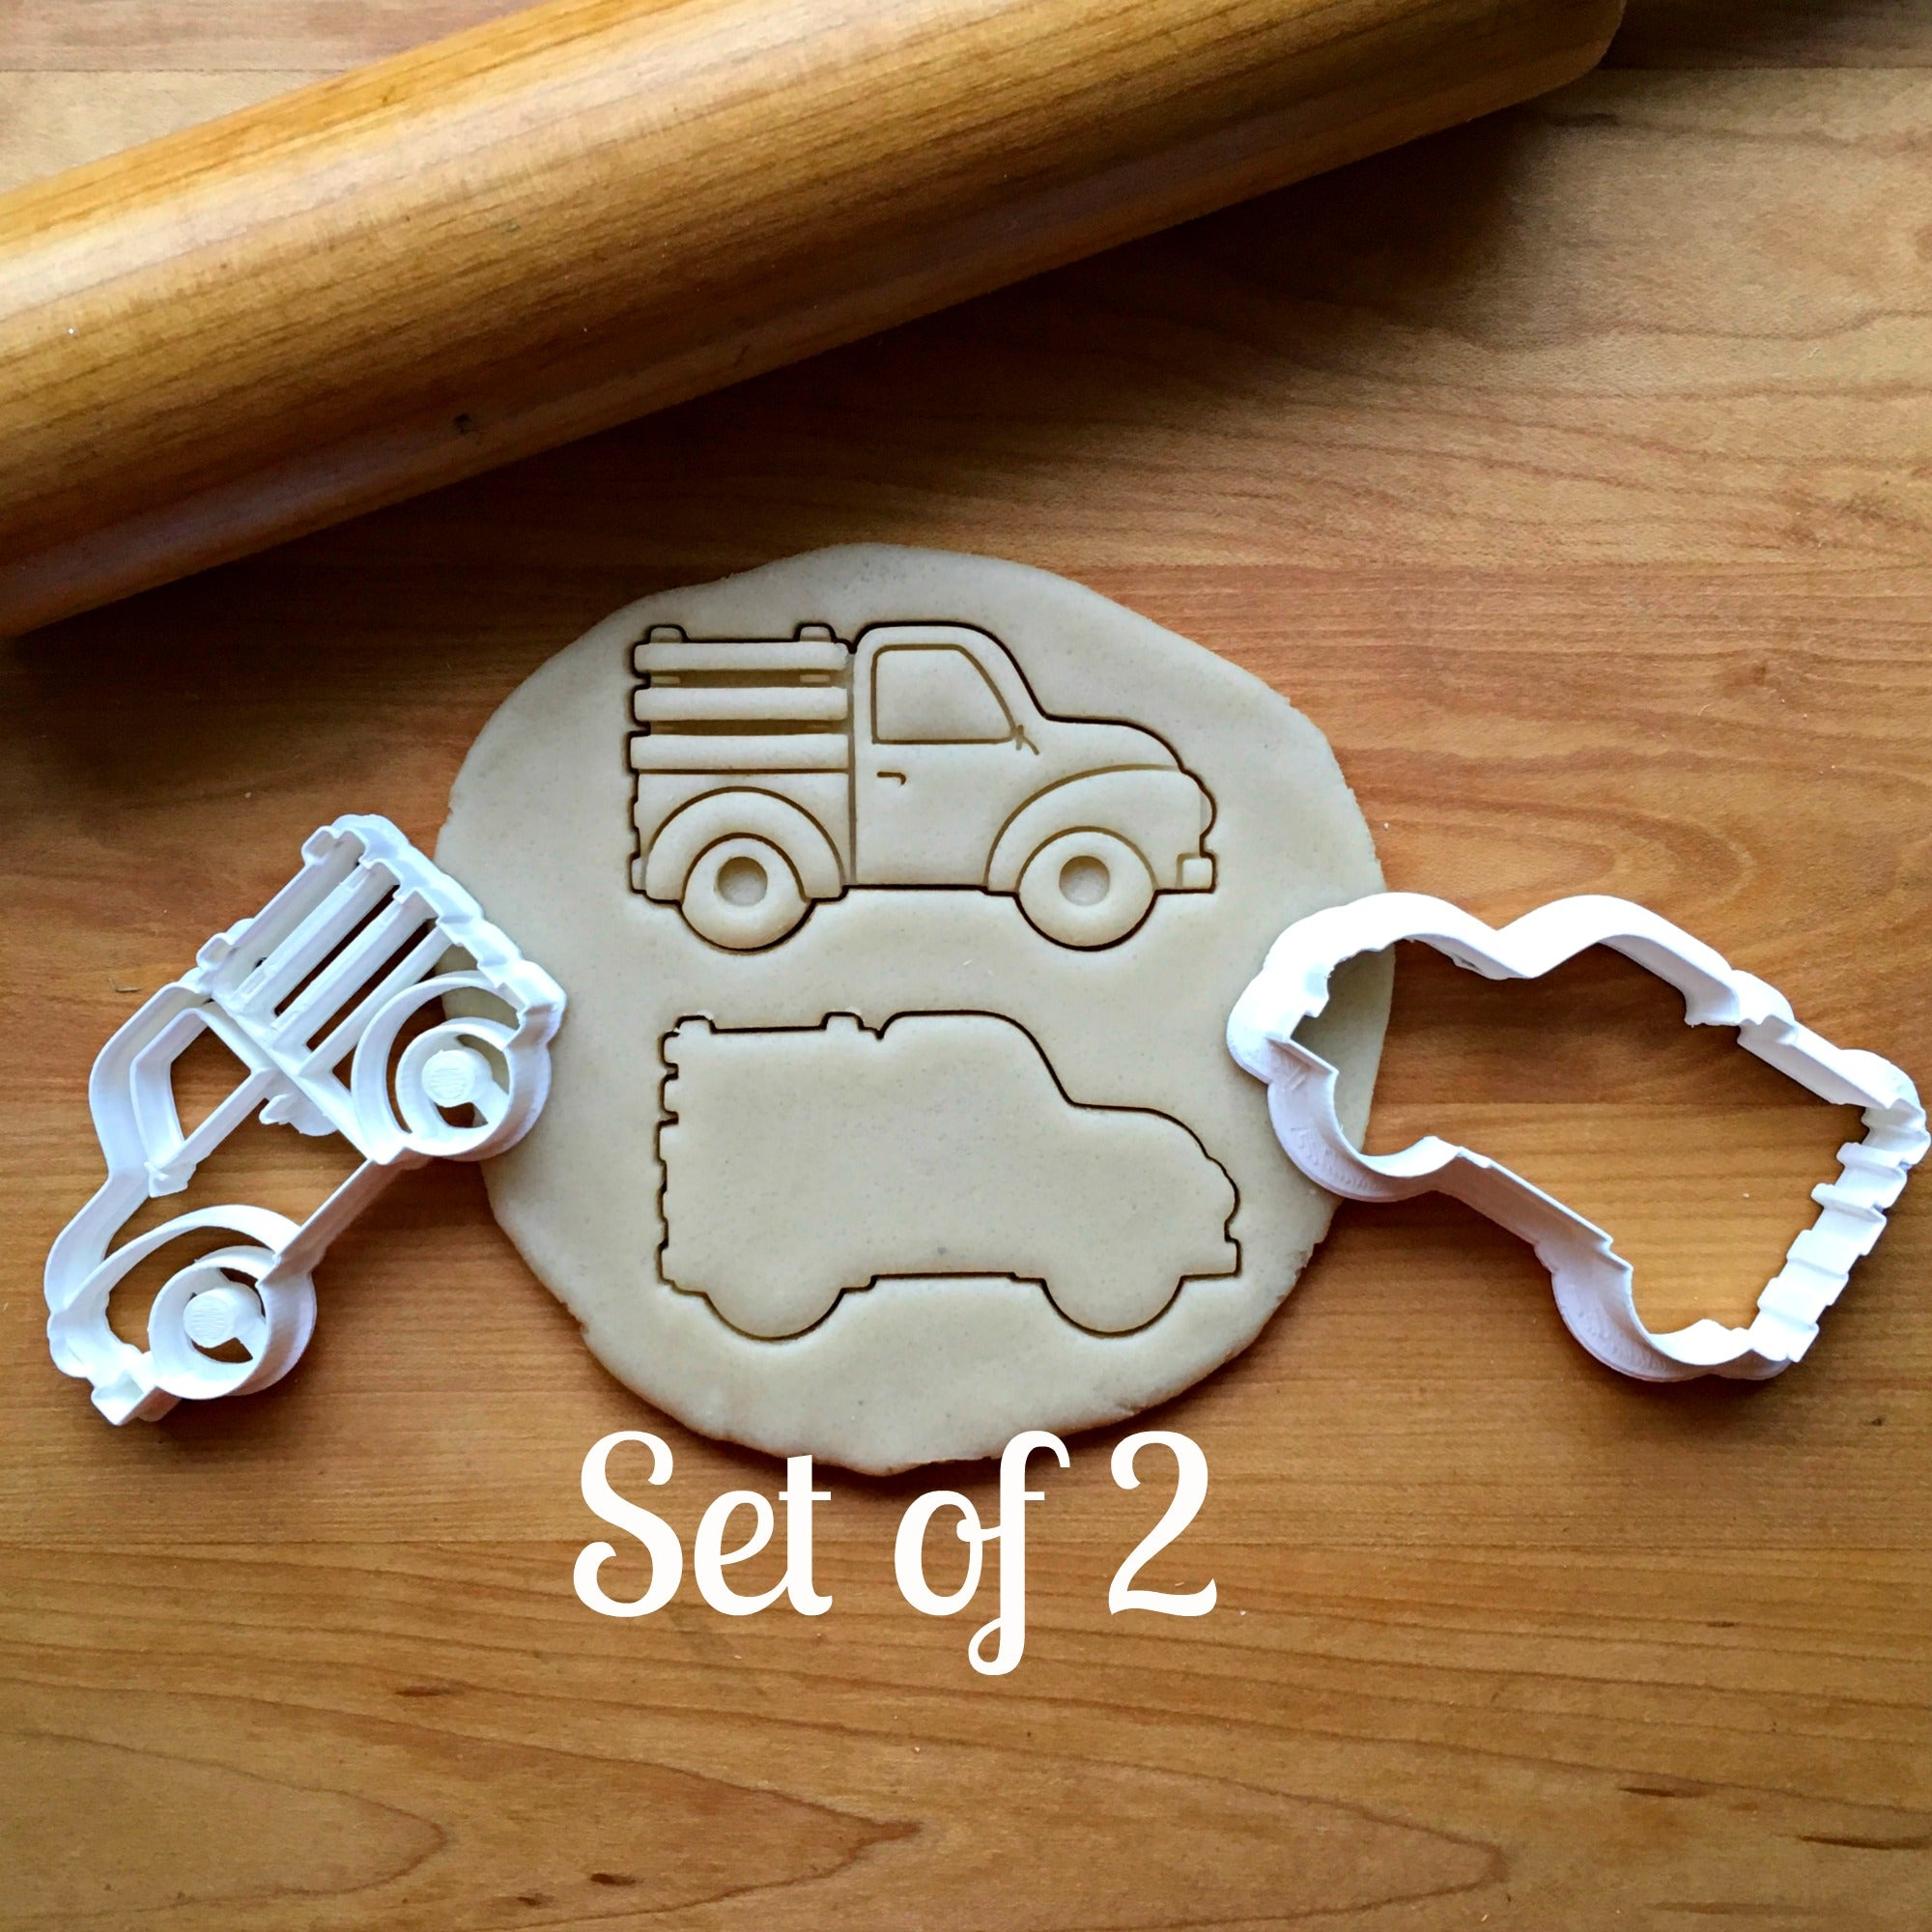 Set of 2 Pickup Truck with Side Panels Cookie Cutters/Dishwasher Safe